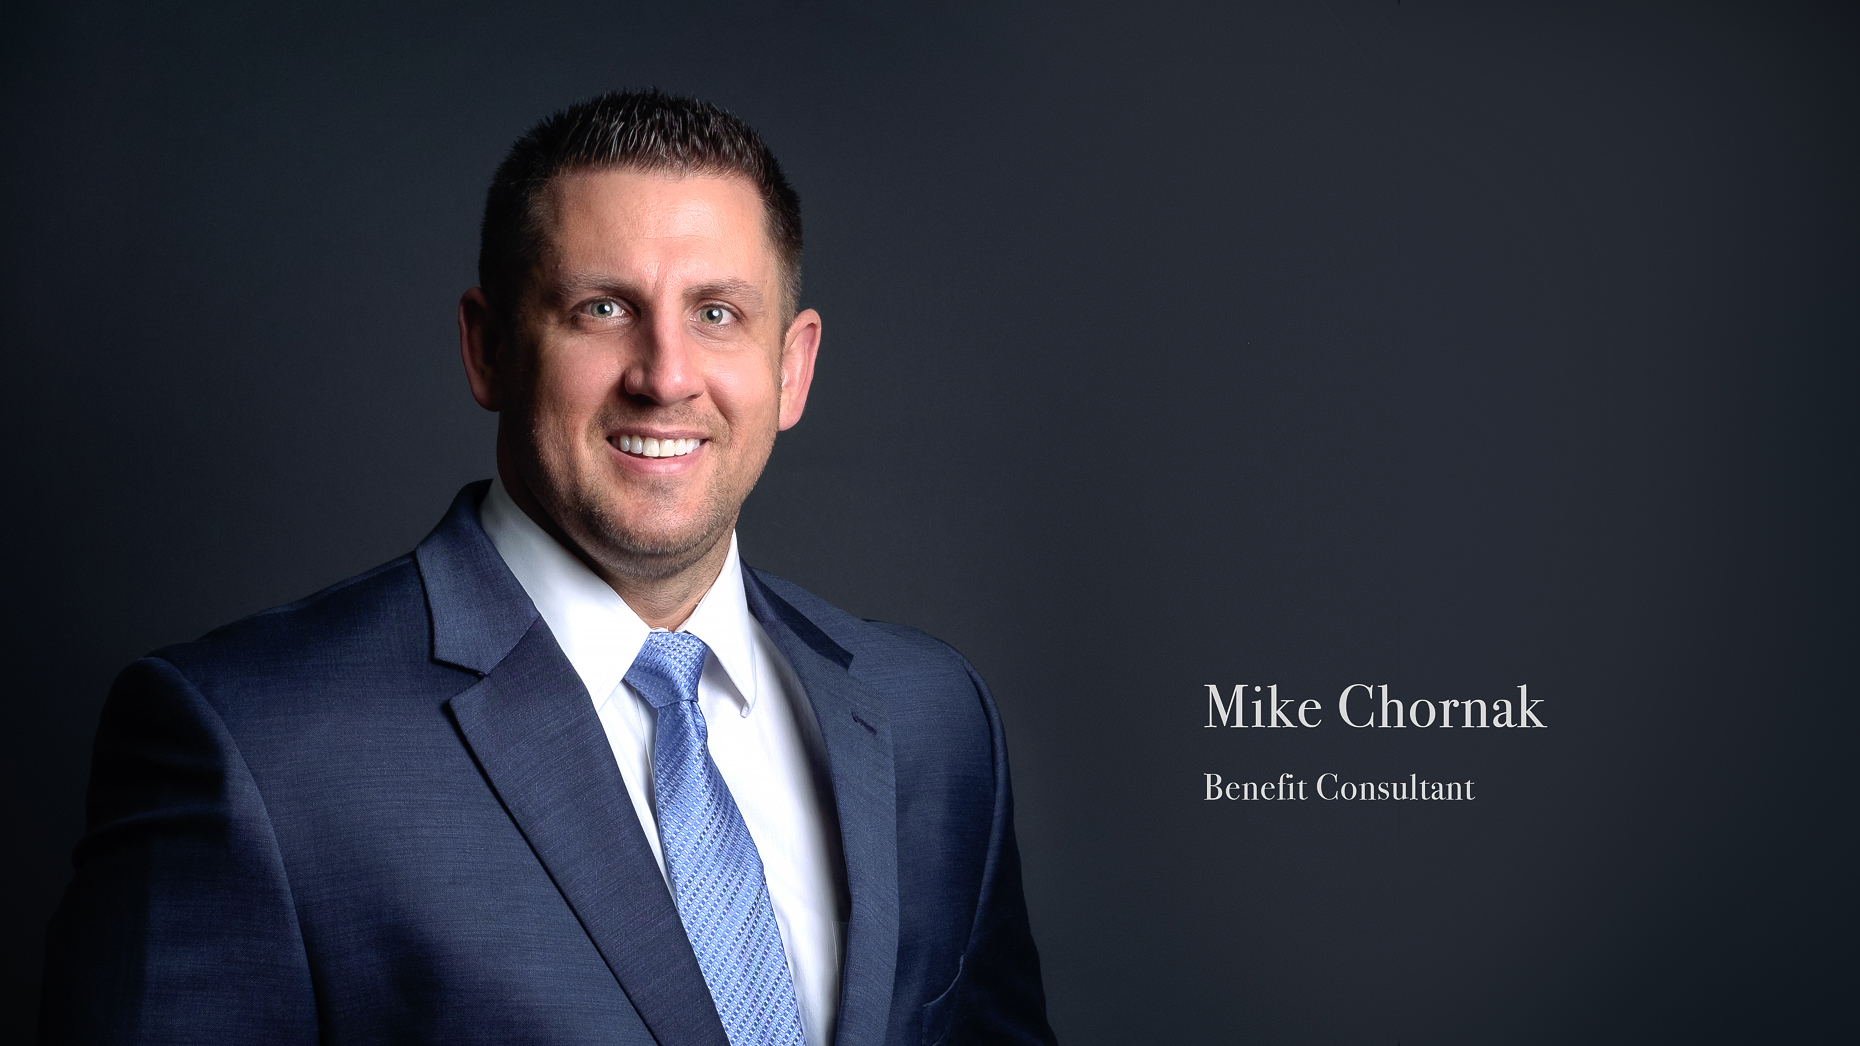 Business headshot of a male insurance professional with their title on the image.